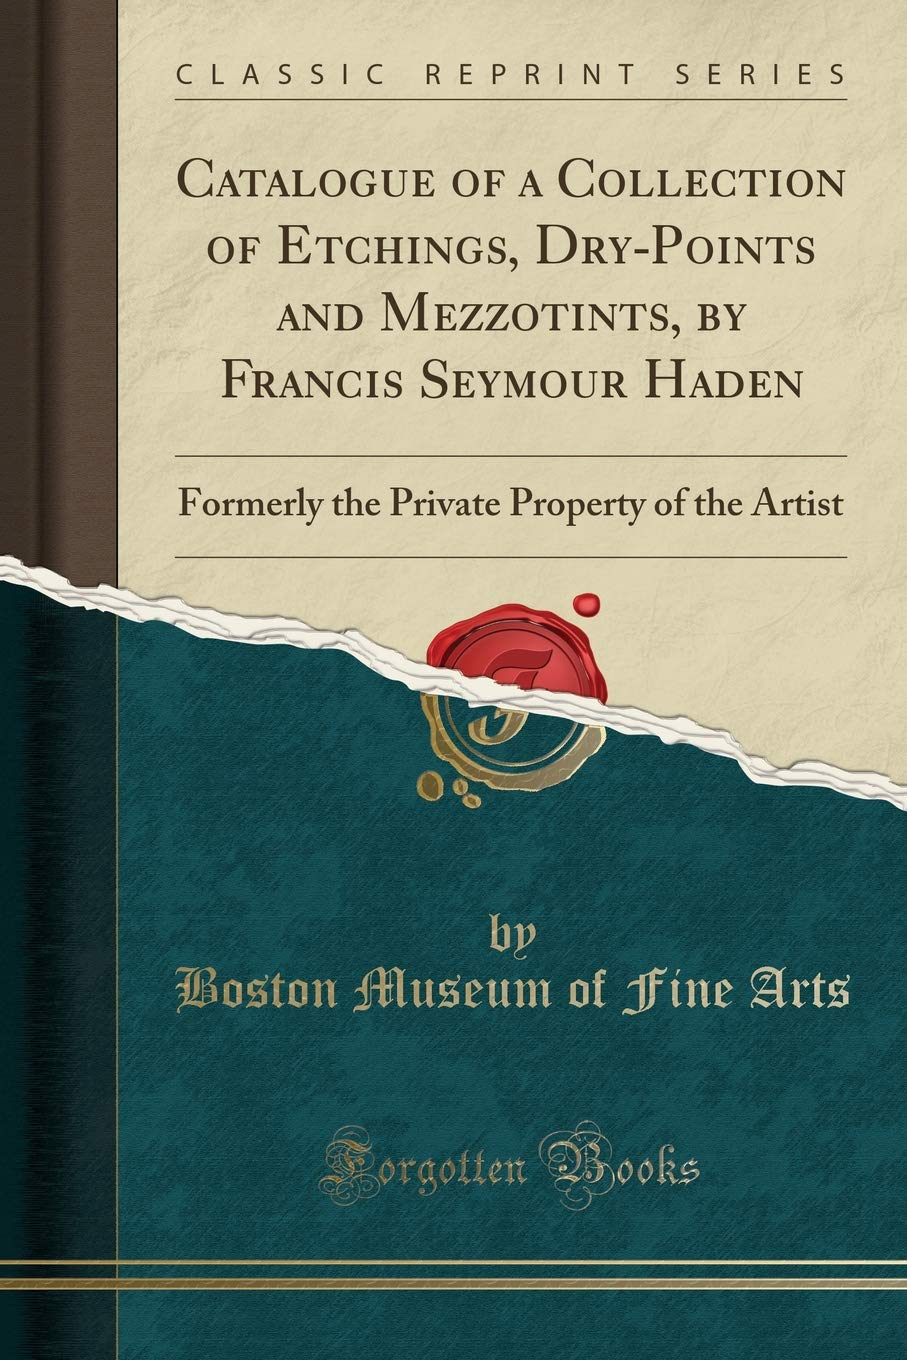 Download Catalogue of a Collection of Etchings, Dry-Points and Mezzotints, by Francis Seymour Haden: Formerly the Private Property of the Artist (Classic Reprint) pdf